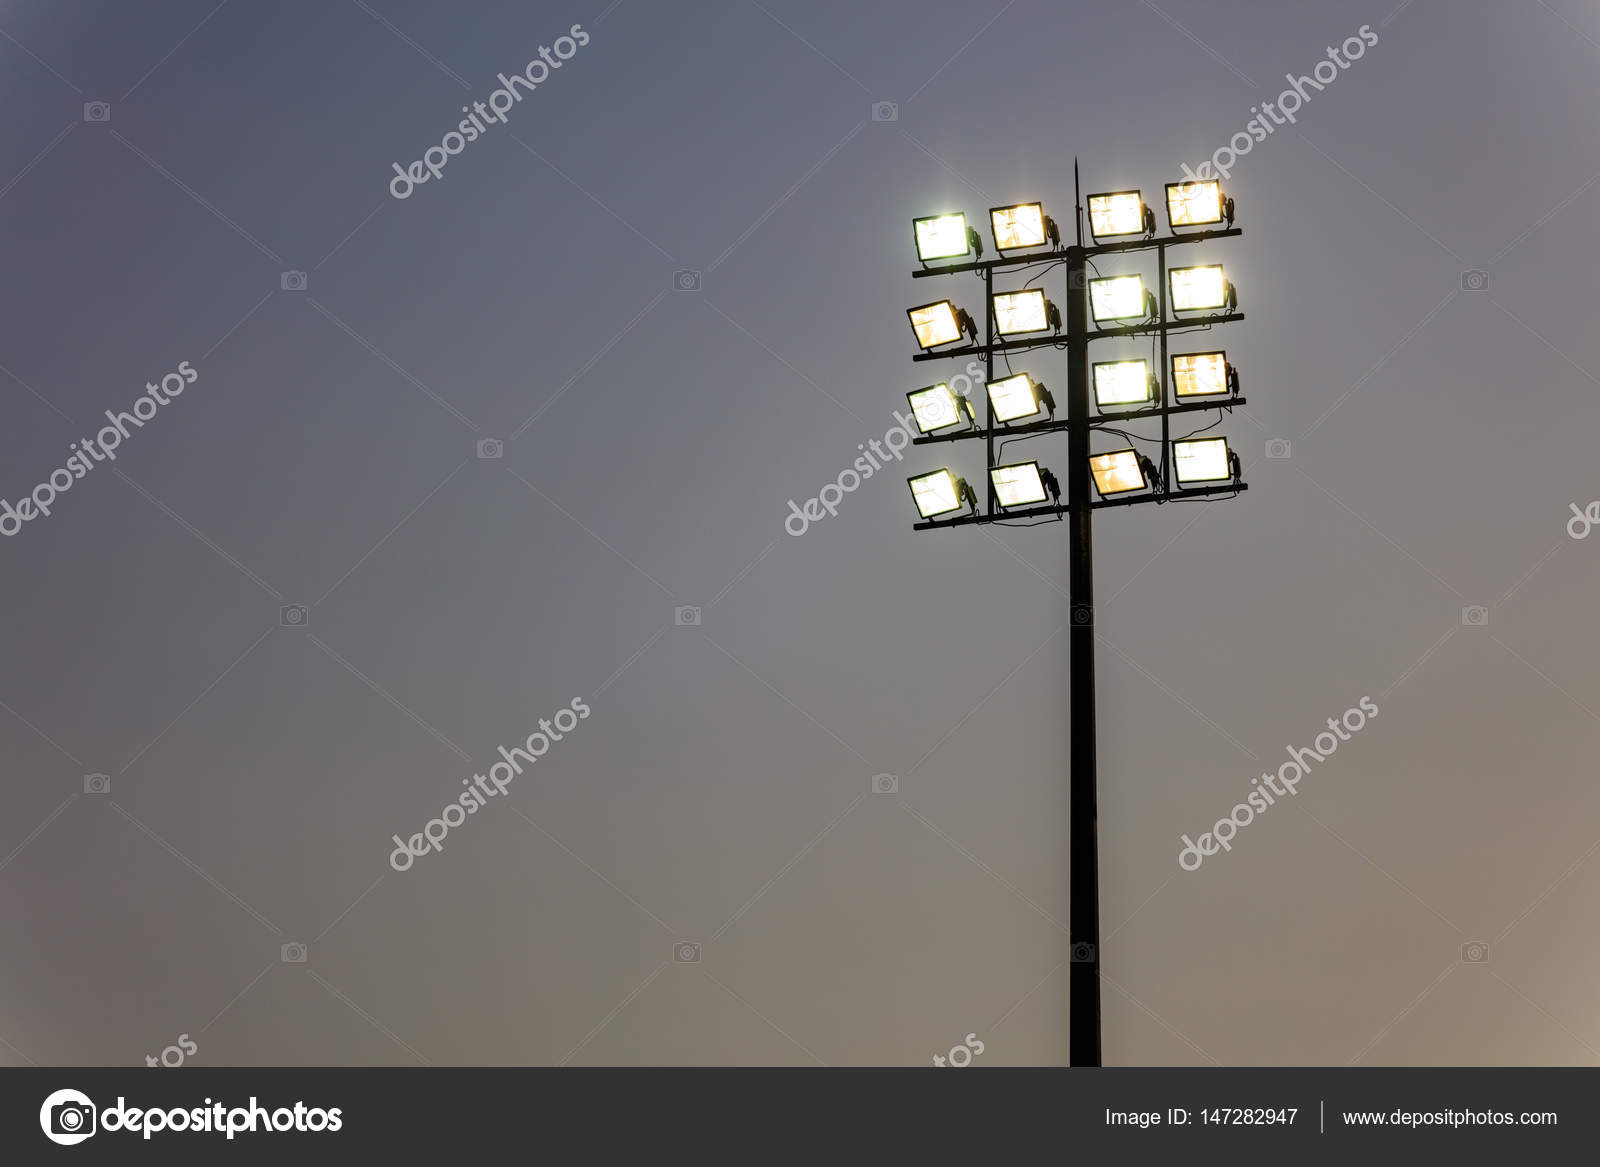 Outdoor stadium lights tower stock photo viperagp 147282947 outdoor stadium lights tower stock photo mozeypictures Image collections